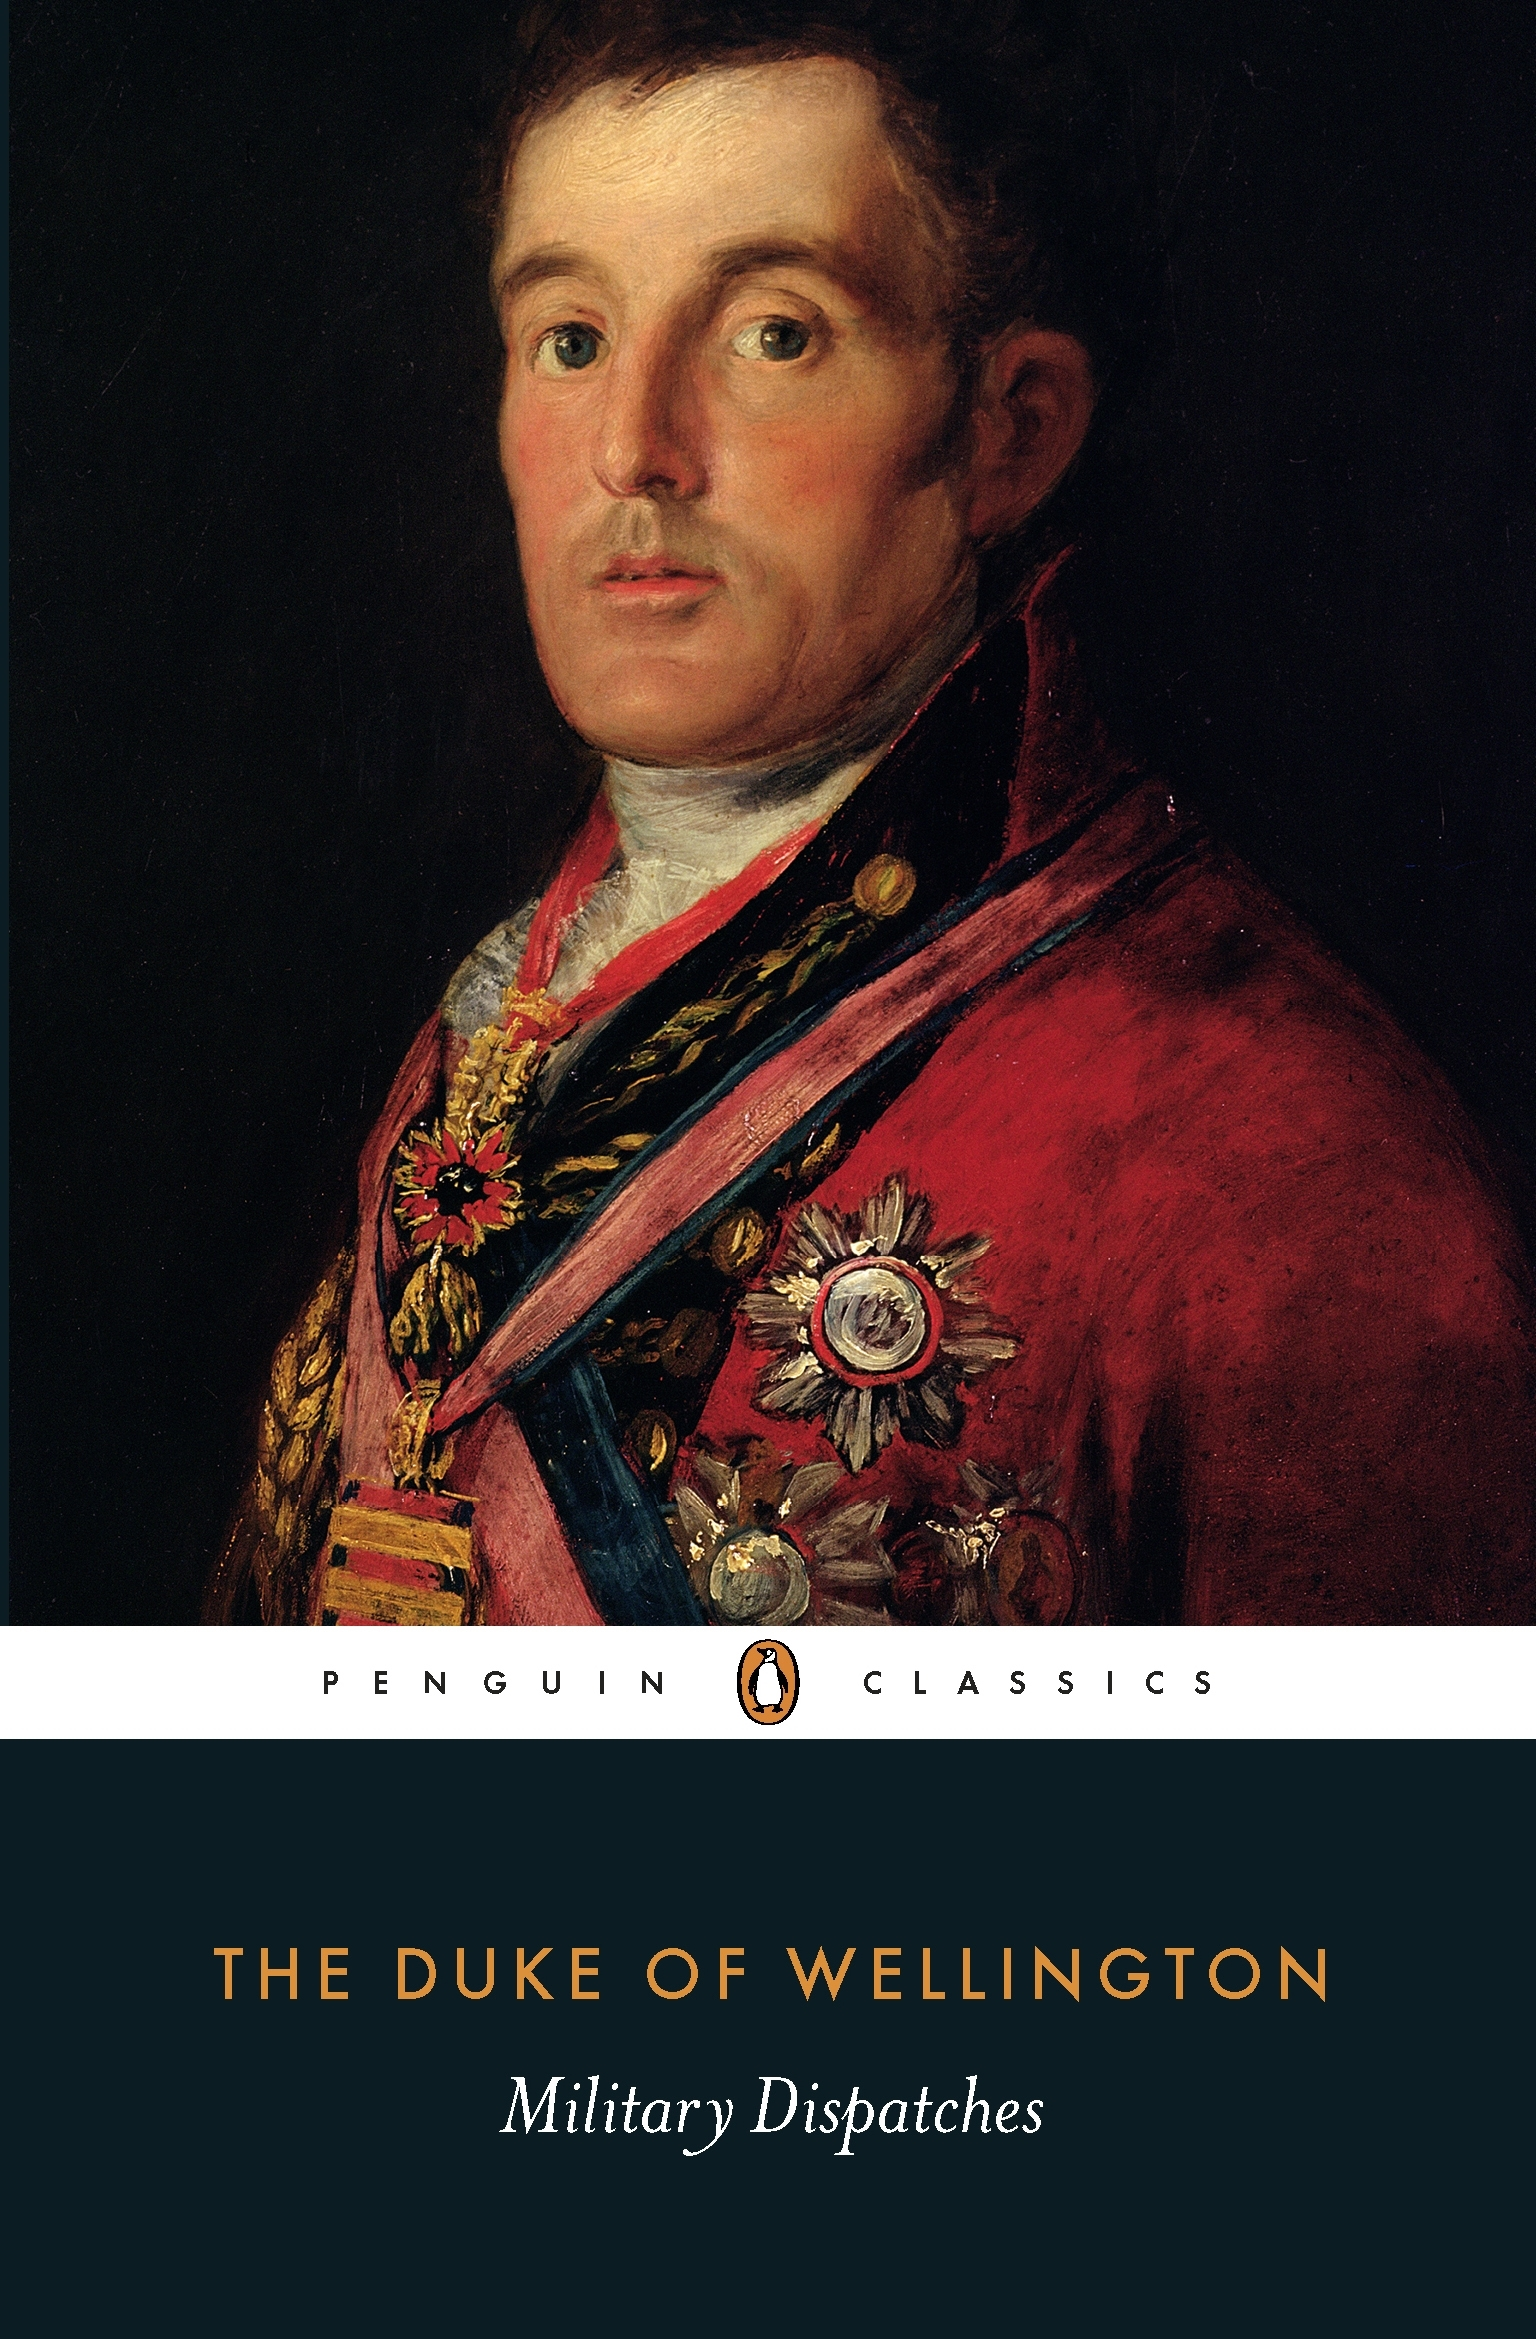 the life and accomplishments of author wesley the duke of wellington Capaciously documented, this first volume of a two-volume life of the duke of wellington places its author, lady longford (author also of queen victoria) in the front ranks of 20th century military and political biographers.